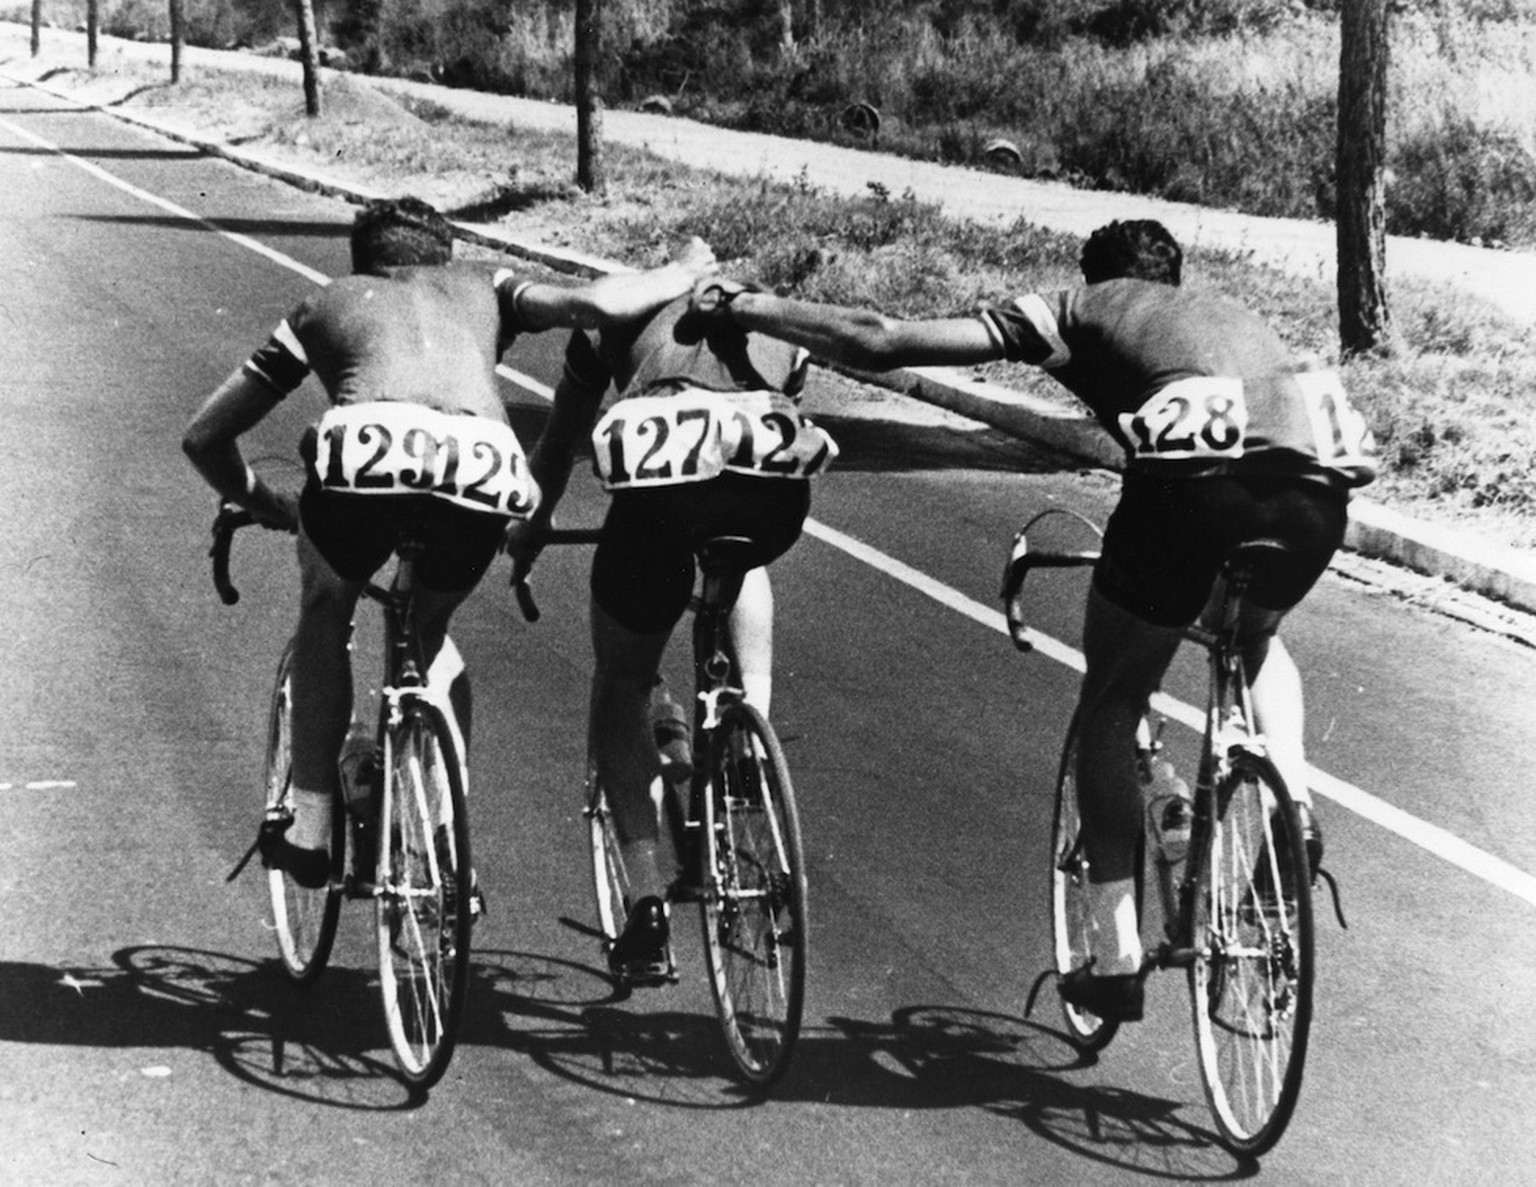 Denmark's Knud Jensen (middle) being escorted by two teammates during the Rome Olympics. He would collapse and die shortly after this photo. This event is a focal point in Mark Johnson's book,  Spitting in the Soup . (photo is not mine)